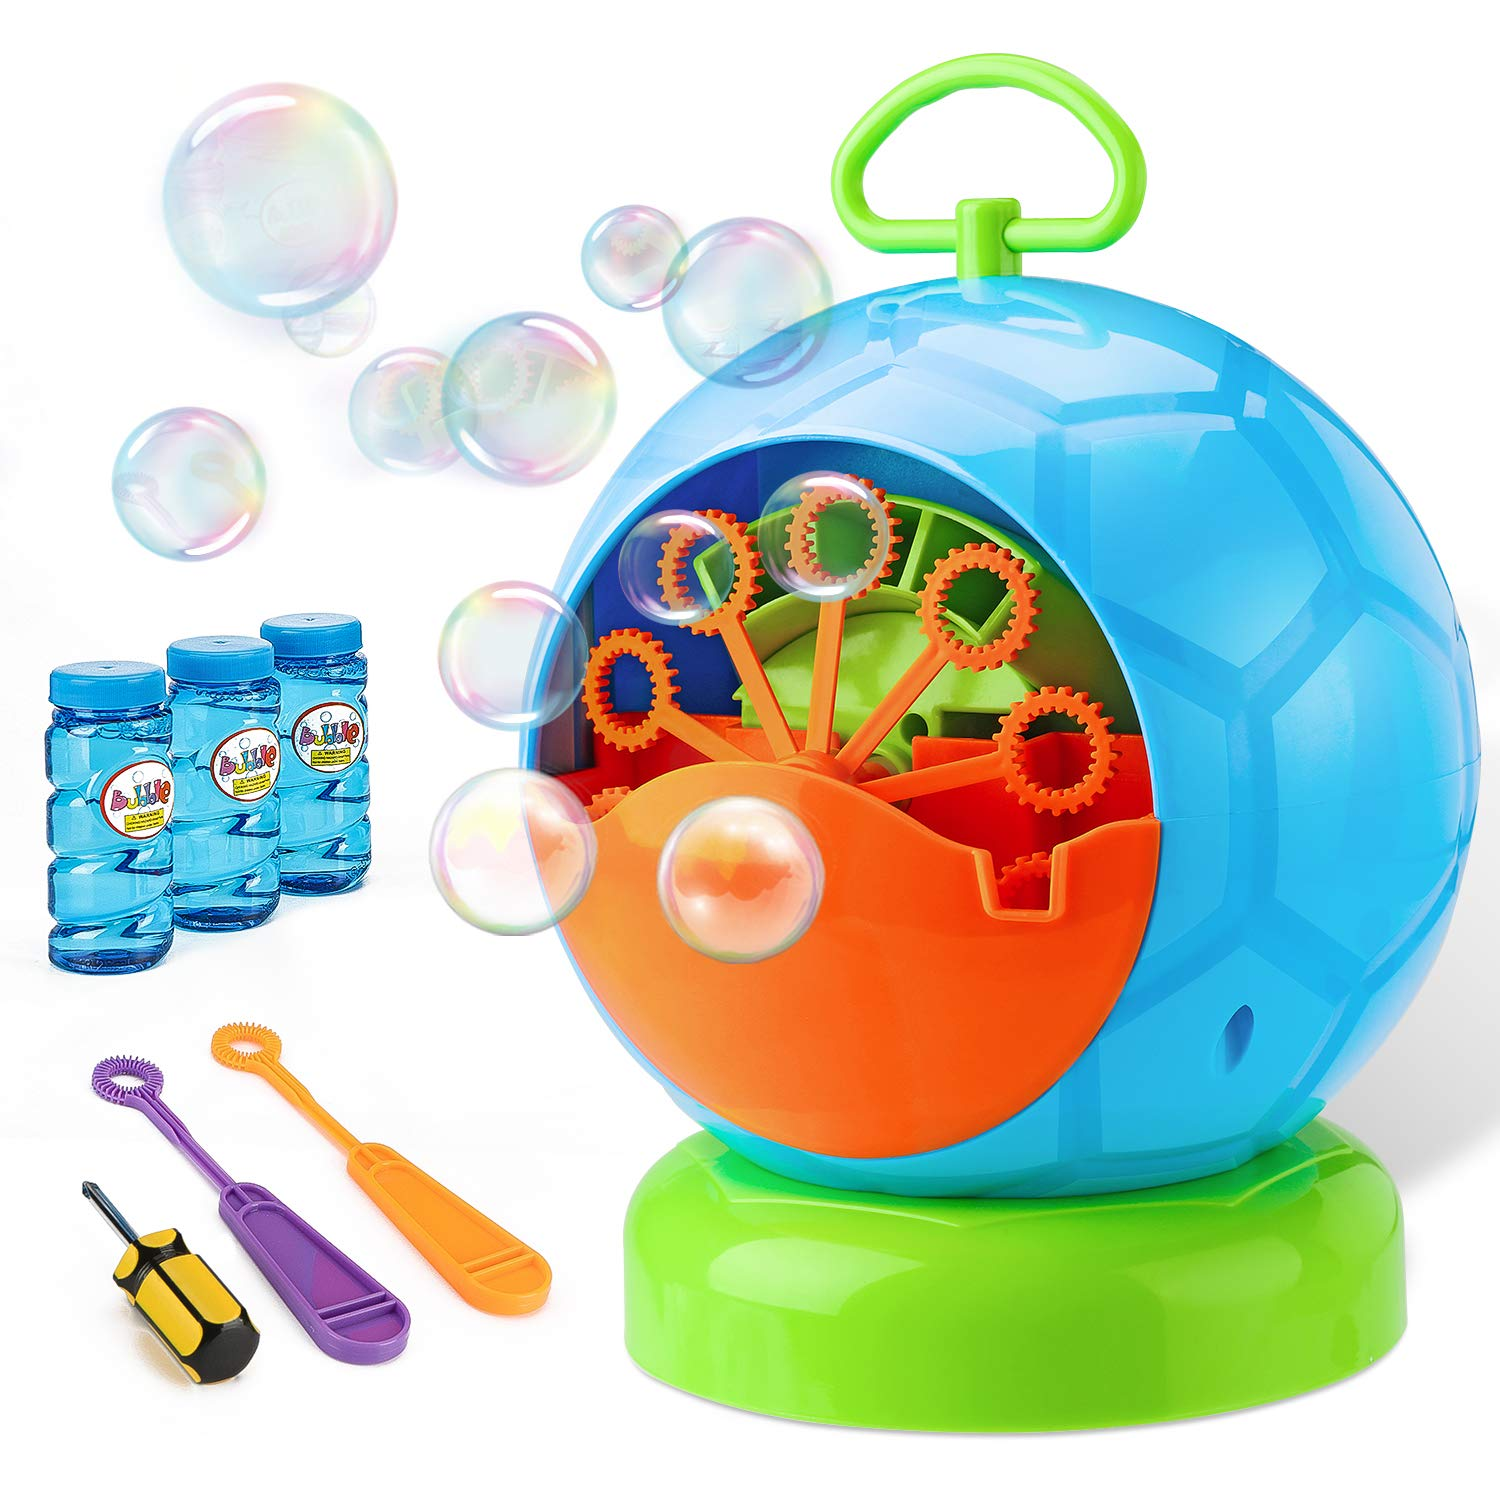 Bubble Machine - Bubble Machine for Kids with 3 Bottles of Bubble Solution and 2 Hand Bubble Wands - Durable and Portable Automatic 800+ Bubble Machine for Christmas, Parties, Wedding (Football Shape) by Fansteck